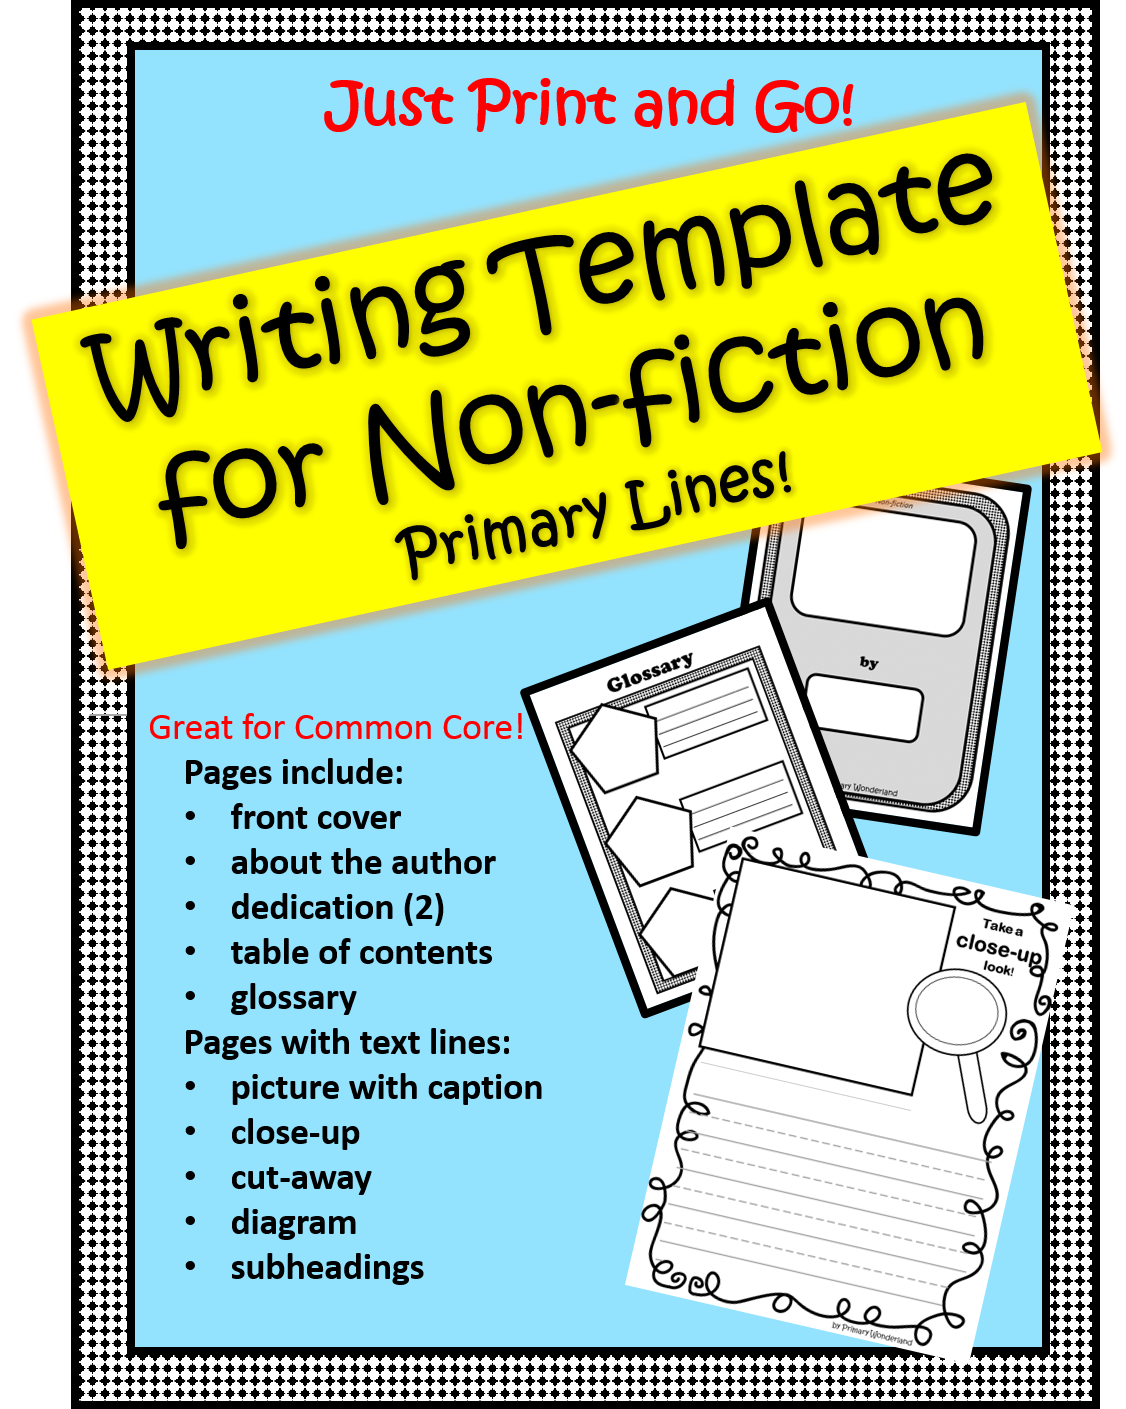 Non-fiction Template- Primary Lines!